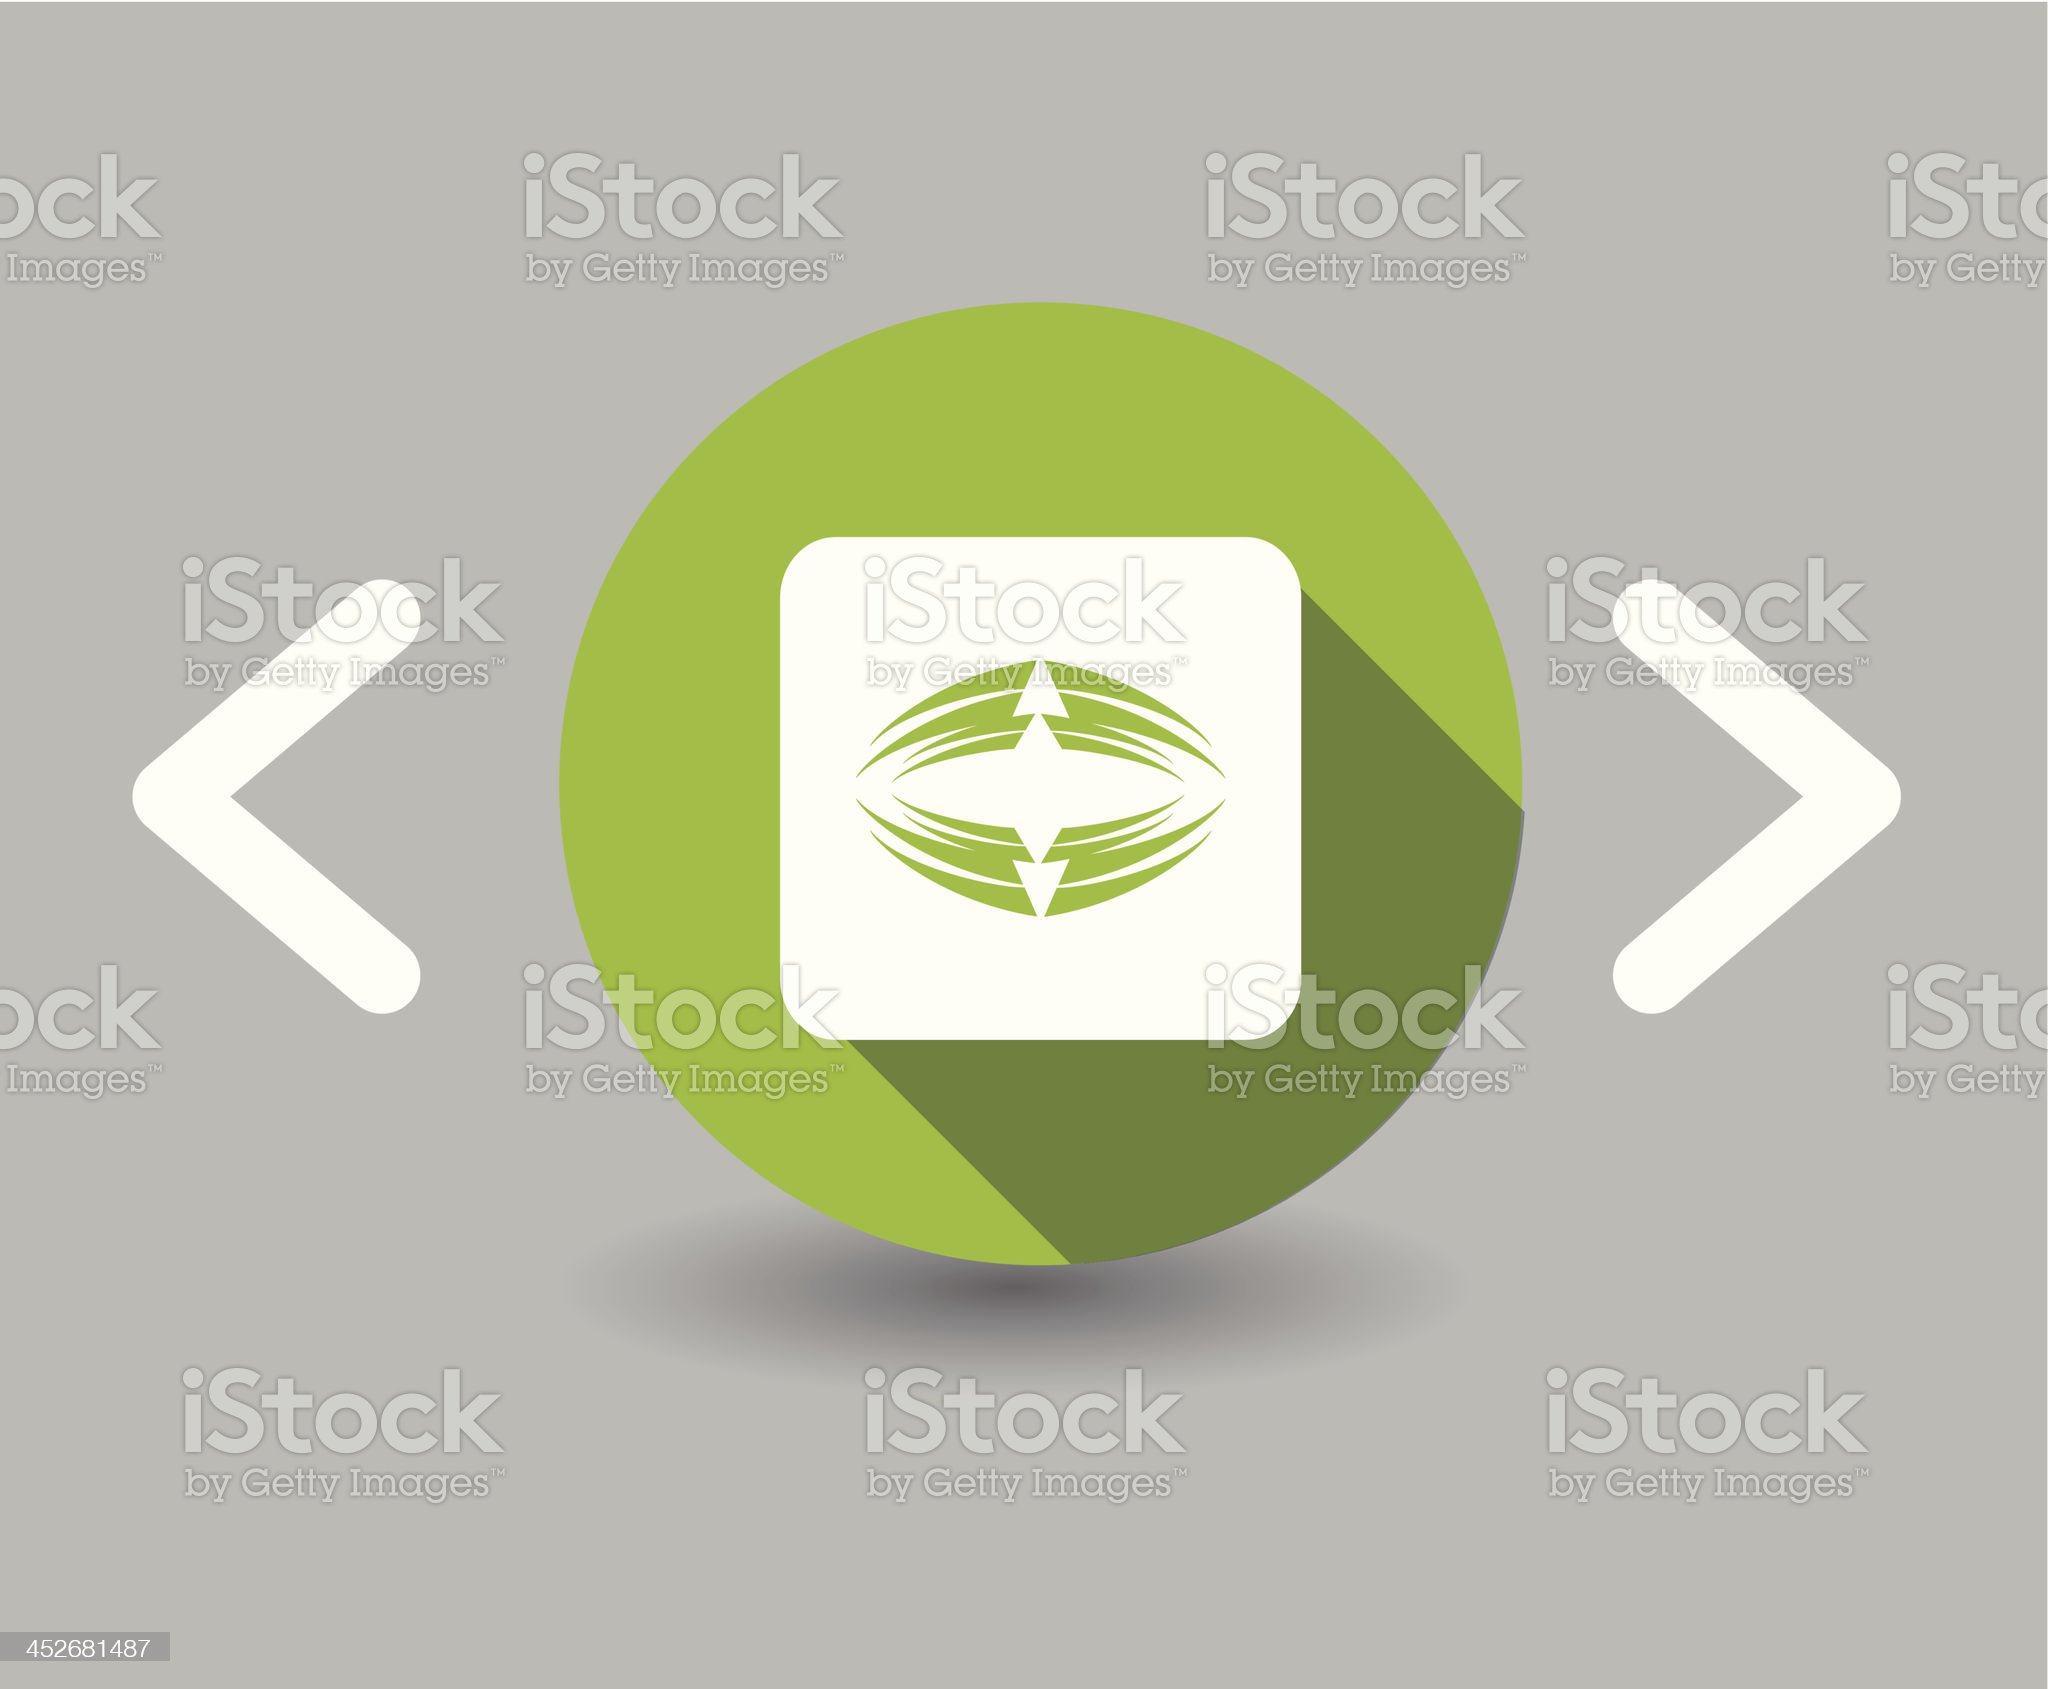 abstraction icons royalty-free stock vector art